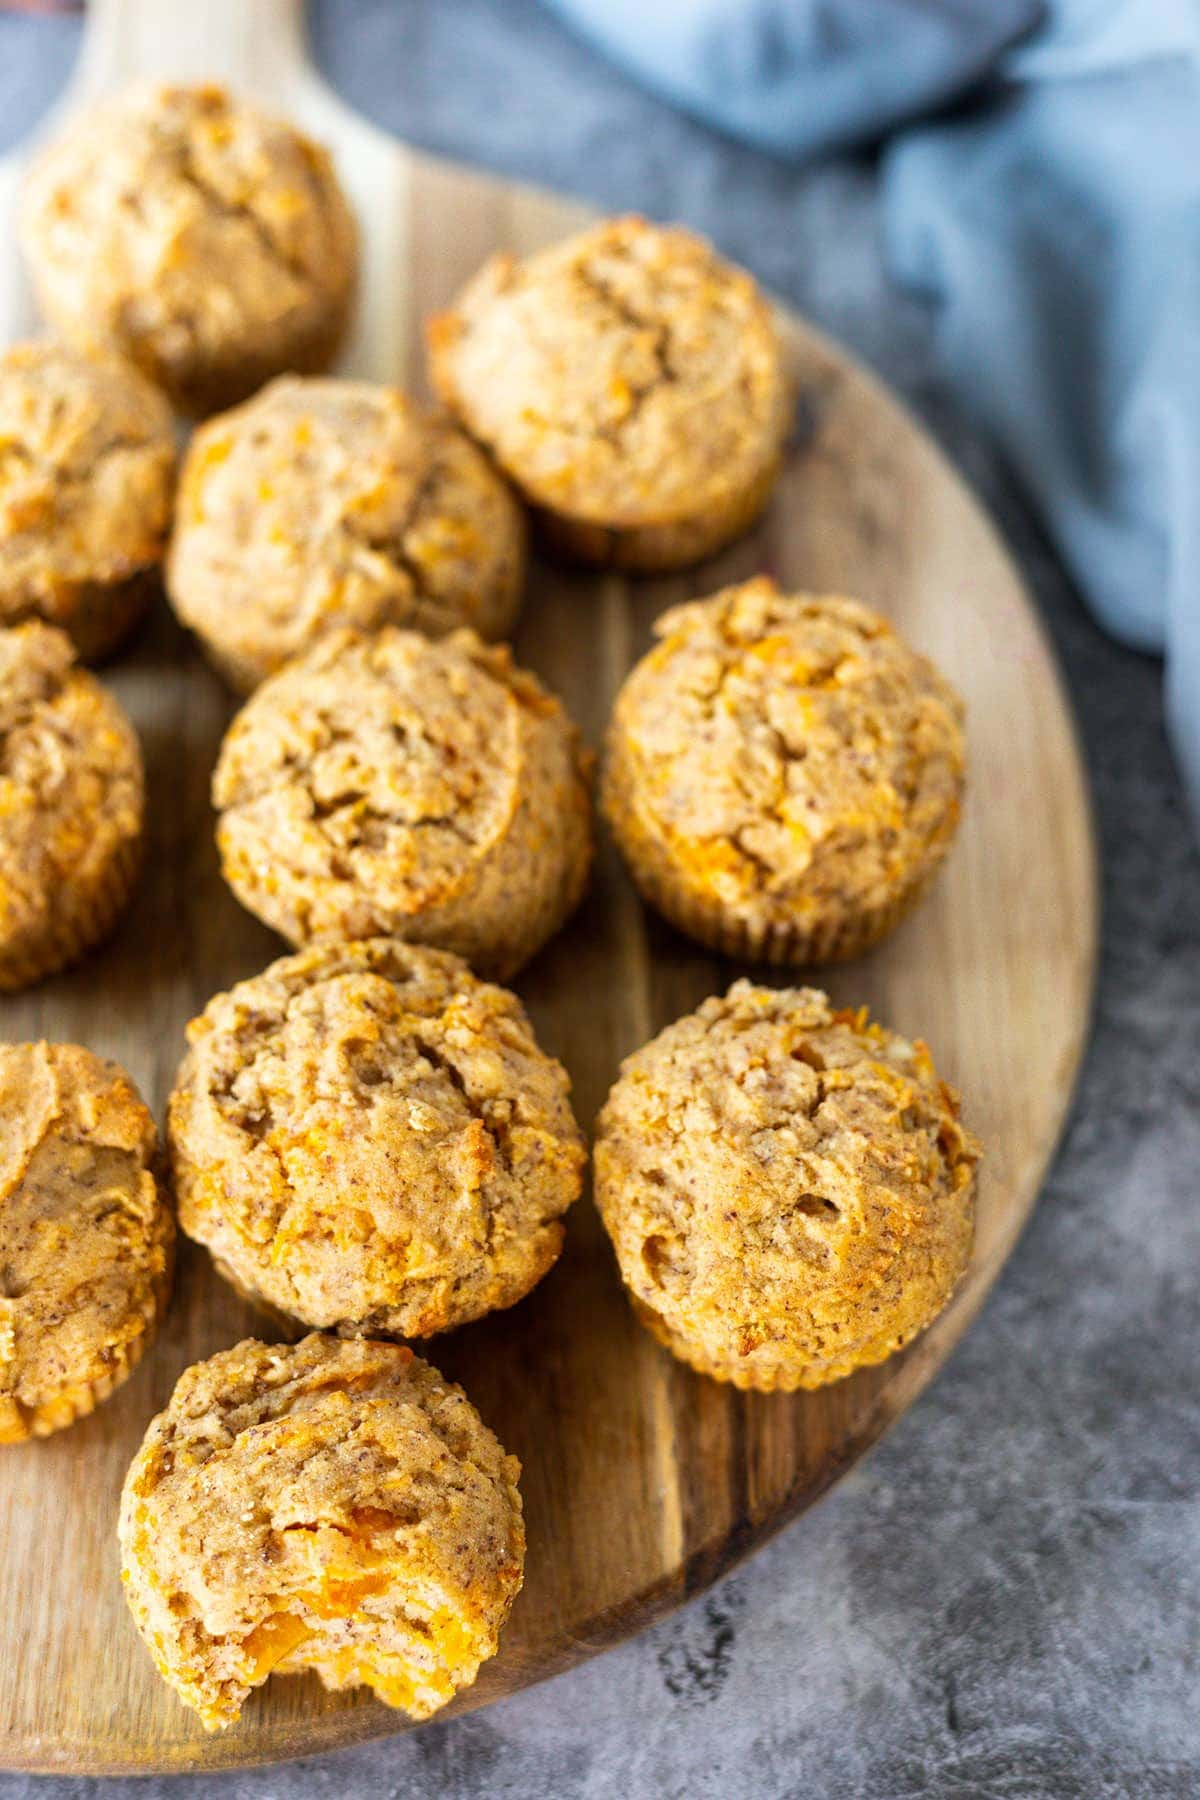 Overlay Gluten-free vegan butternut quash muffins on a round cutting board on a grey concrete with a grey apron